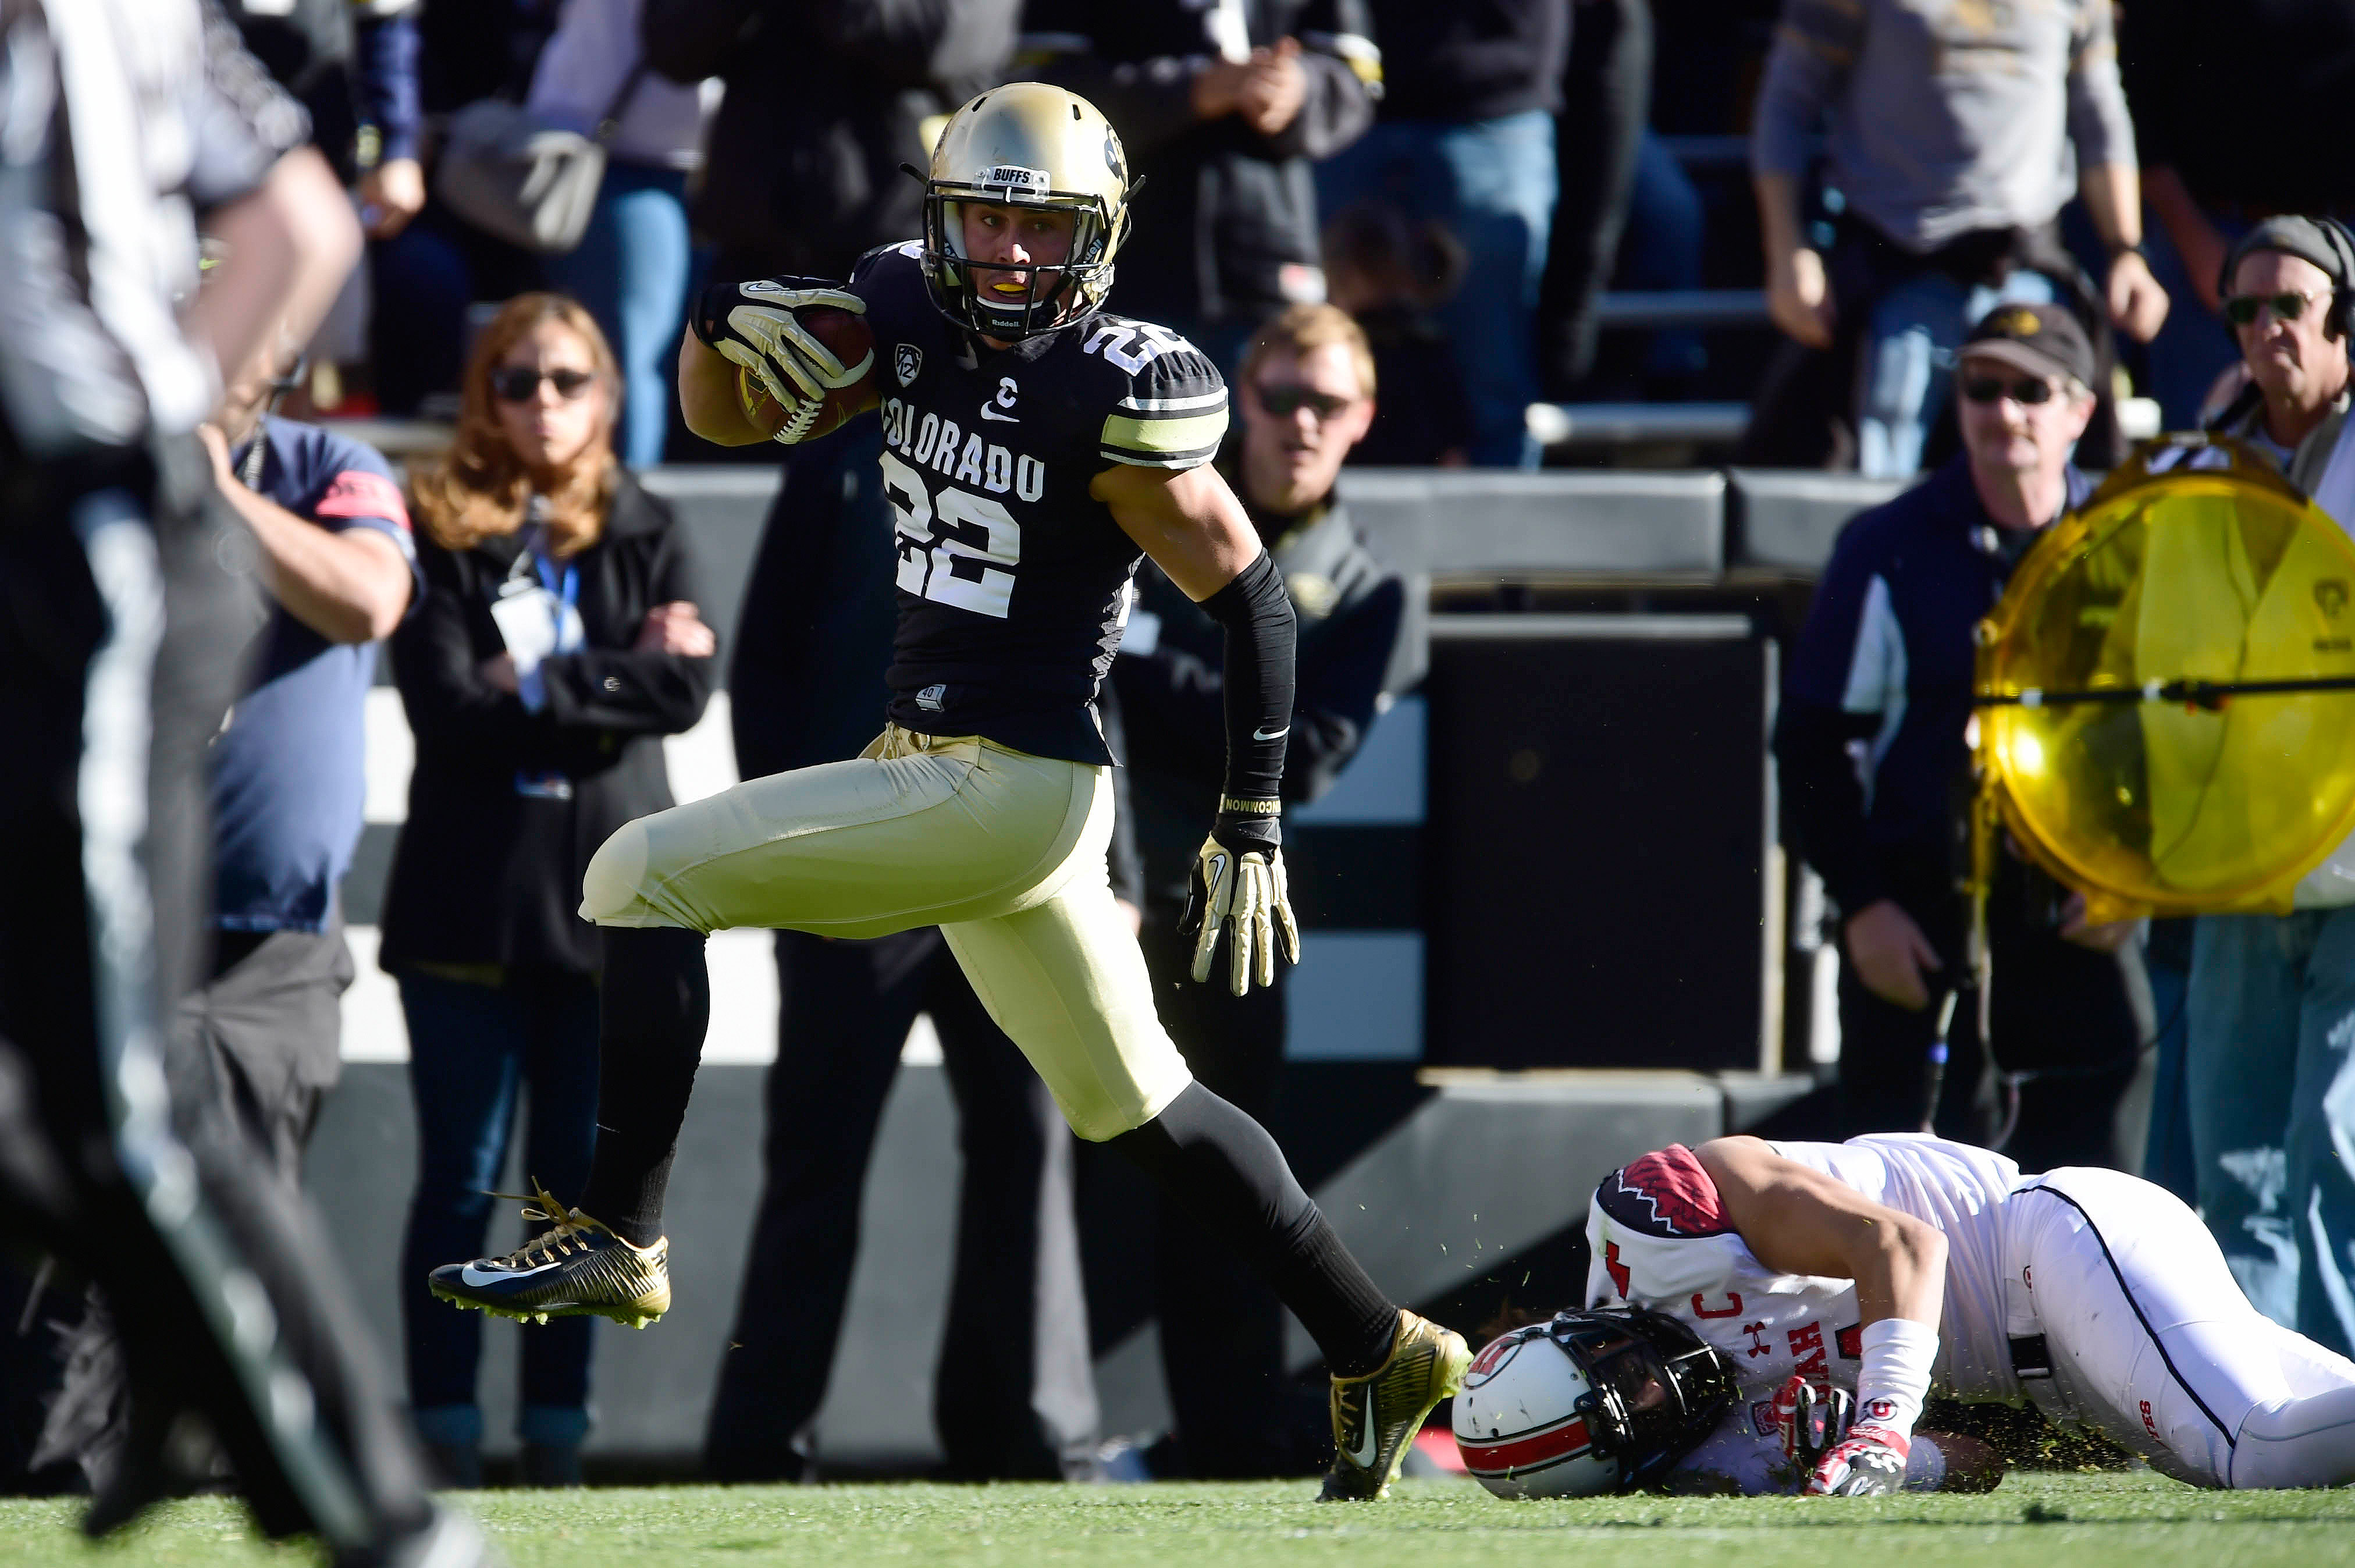 Enjoy Nelson Spruce's last ride in the black and gold. (Or silver and white, as it were.)